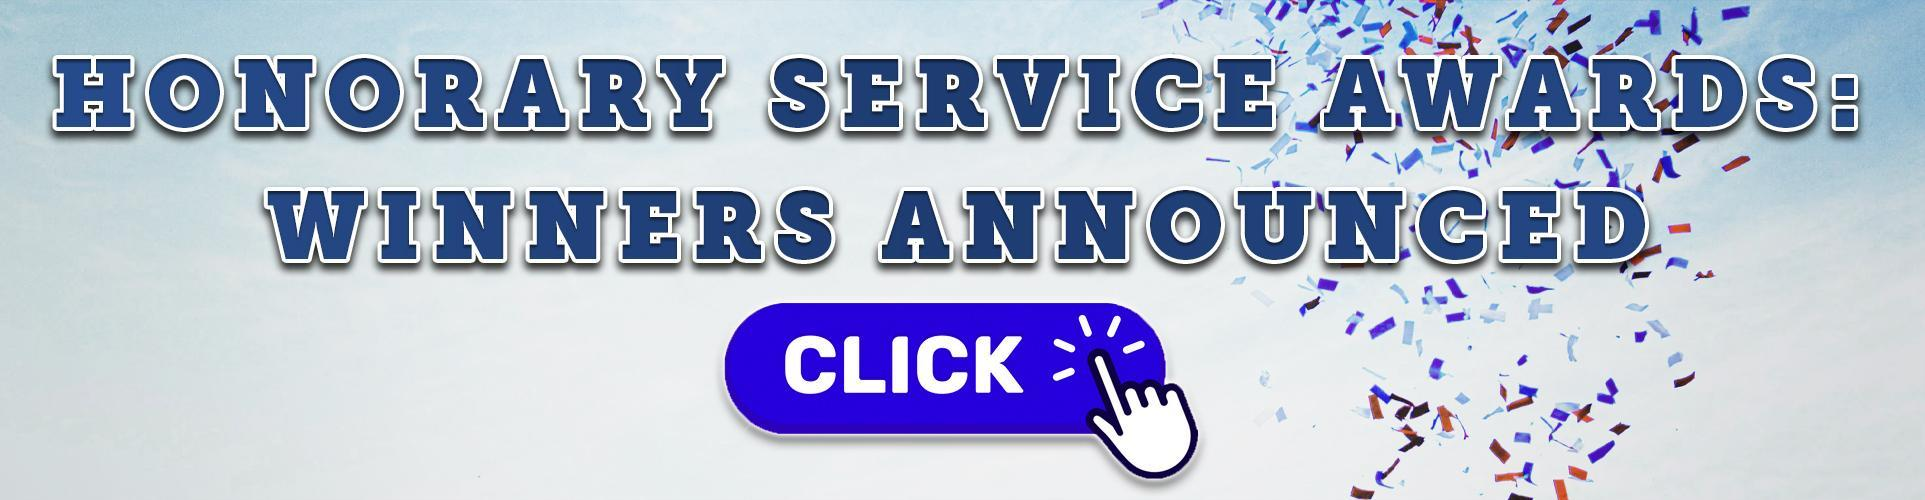 Honorary Service Awards: Winners Announced